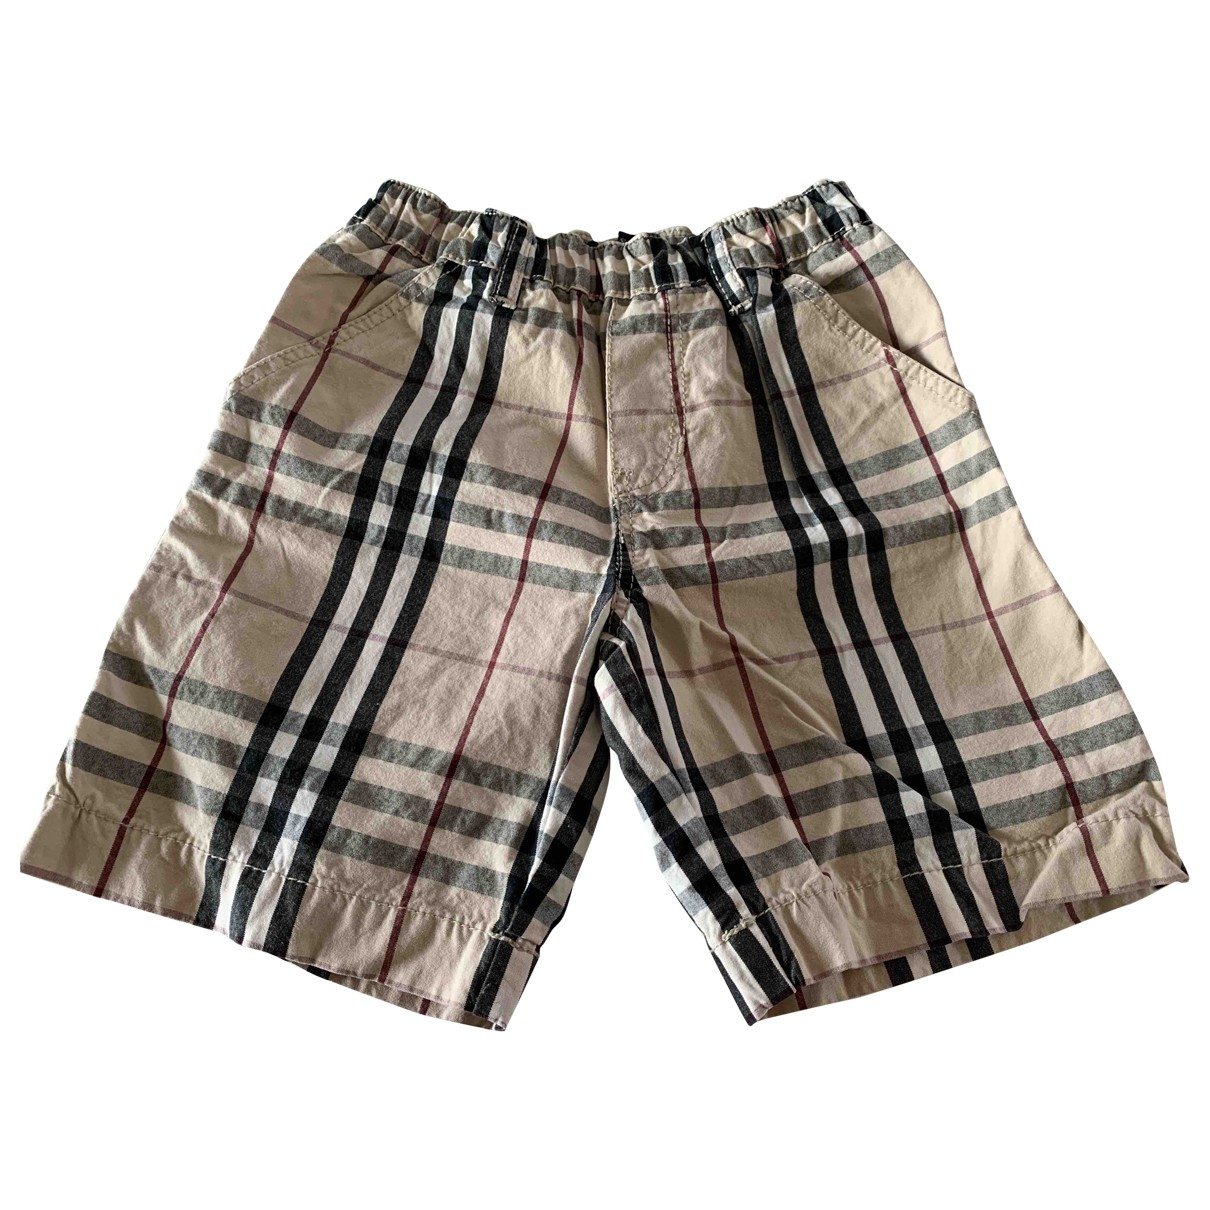 Burberry \N Brown Cotton Shorts for Kids 3 years - until 39 inches UK